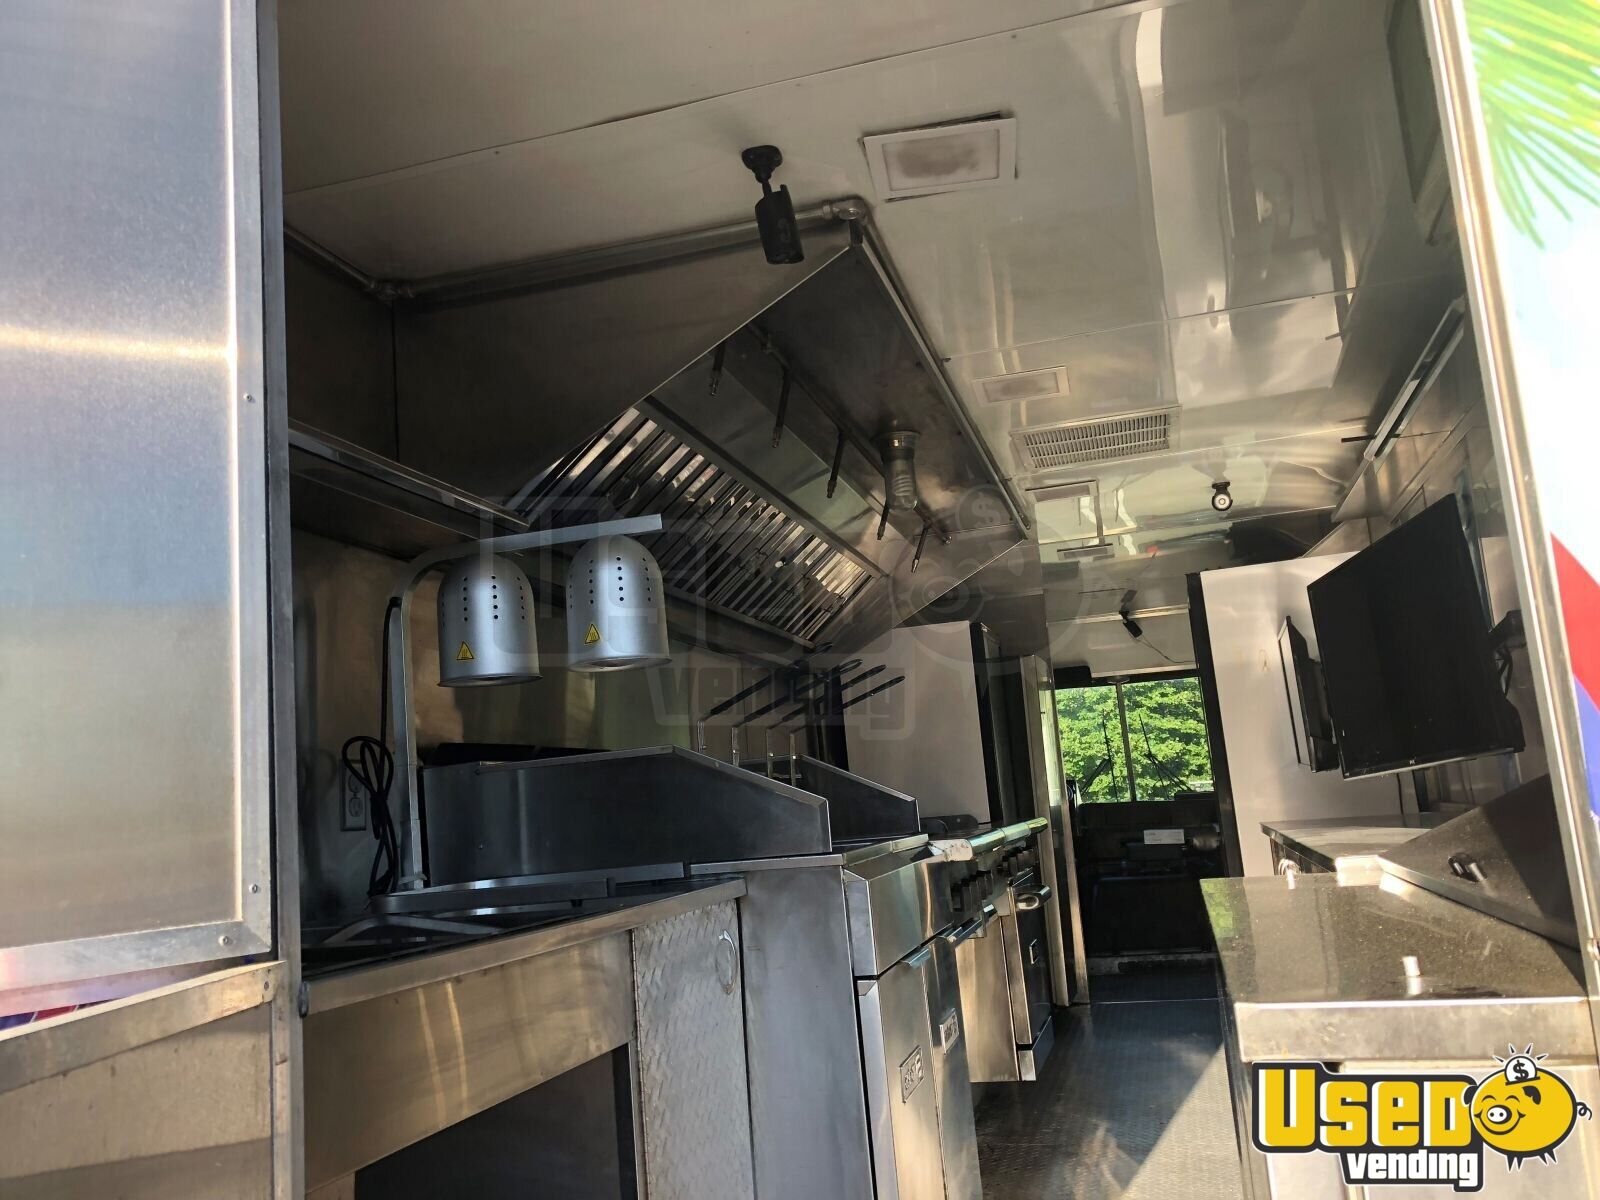 1999 Chevrolet P30 Step Van Food Truck Prep Station Cooler Connecticut Diesel Engine for Sale - 11